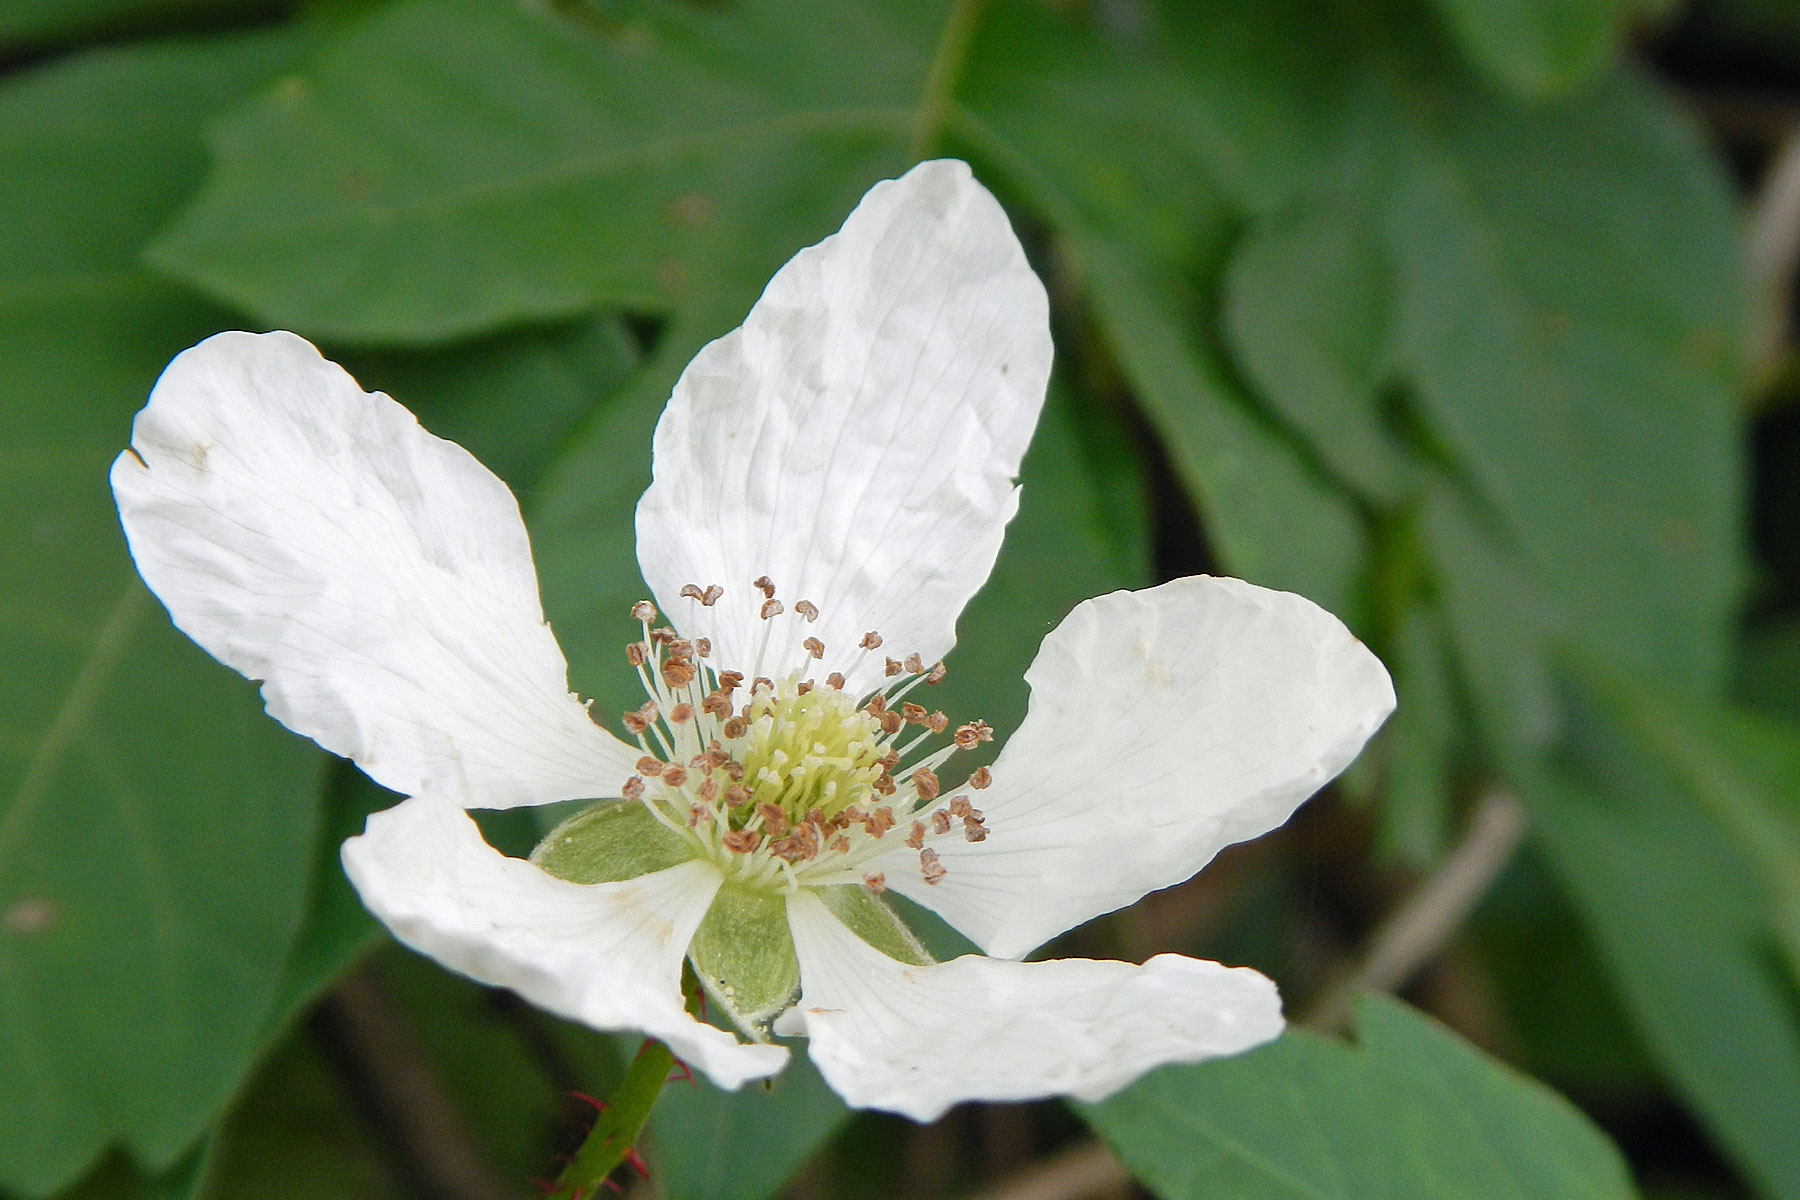 Claudes survey april 2013 dewberry flower travis audubon close up of delicate white flower with five petals and leafy background mightylinksfo